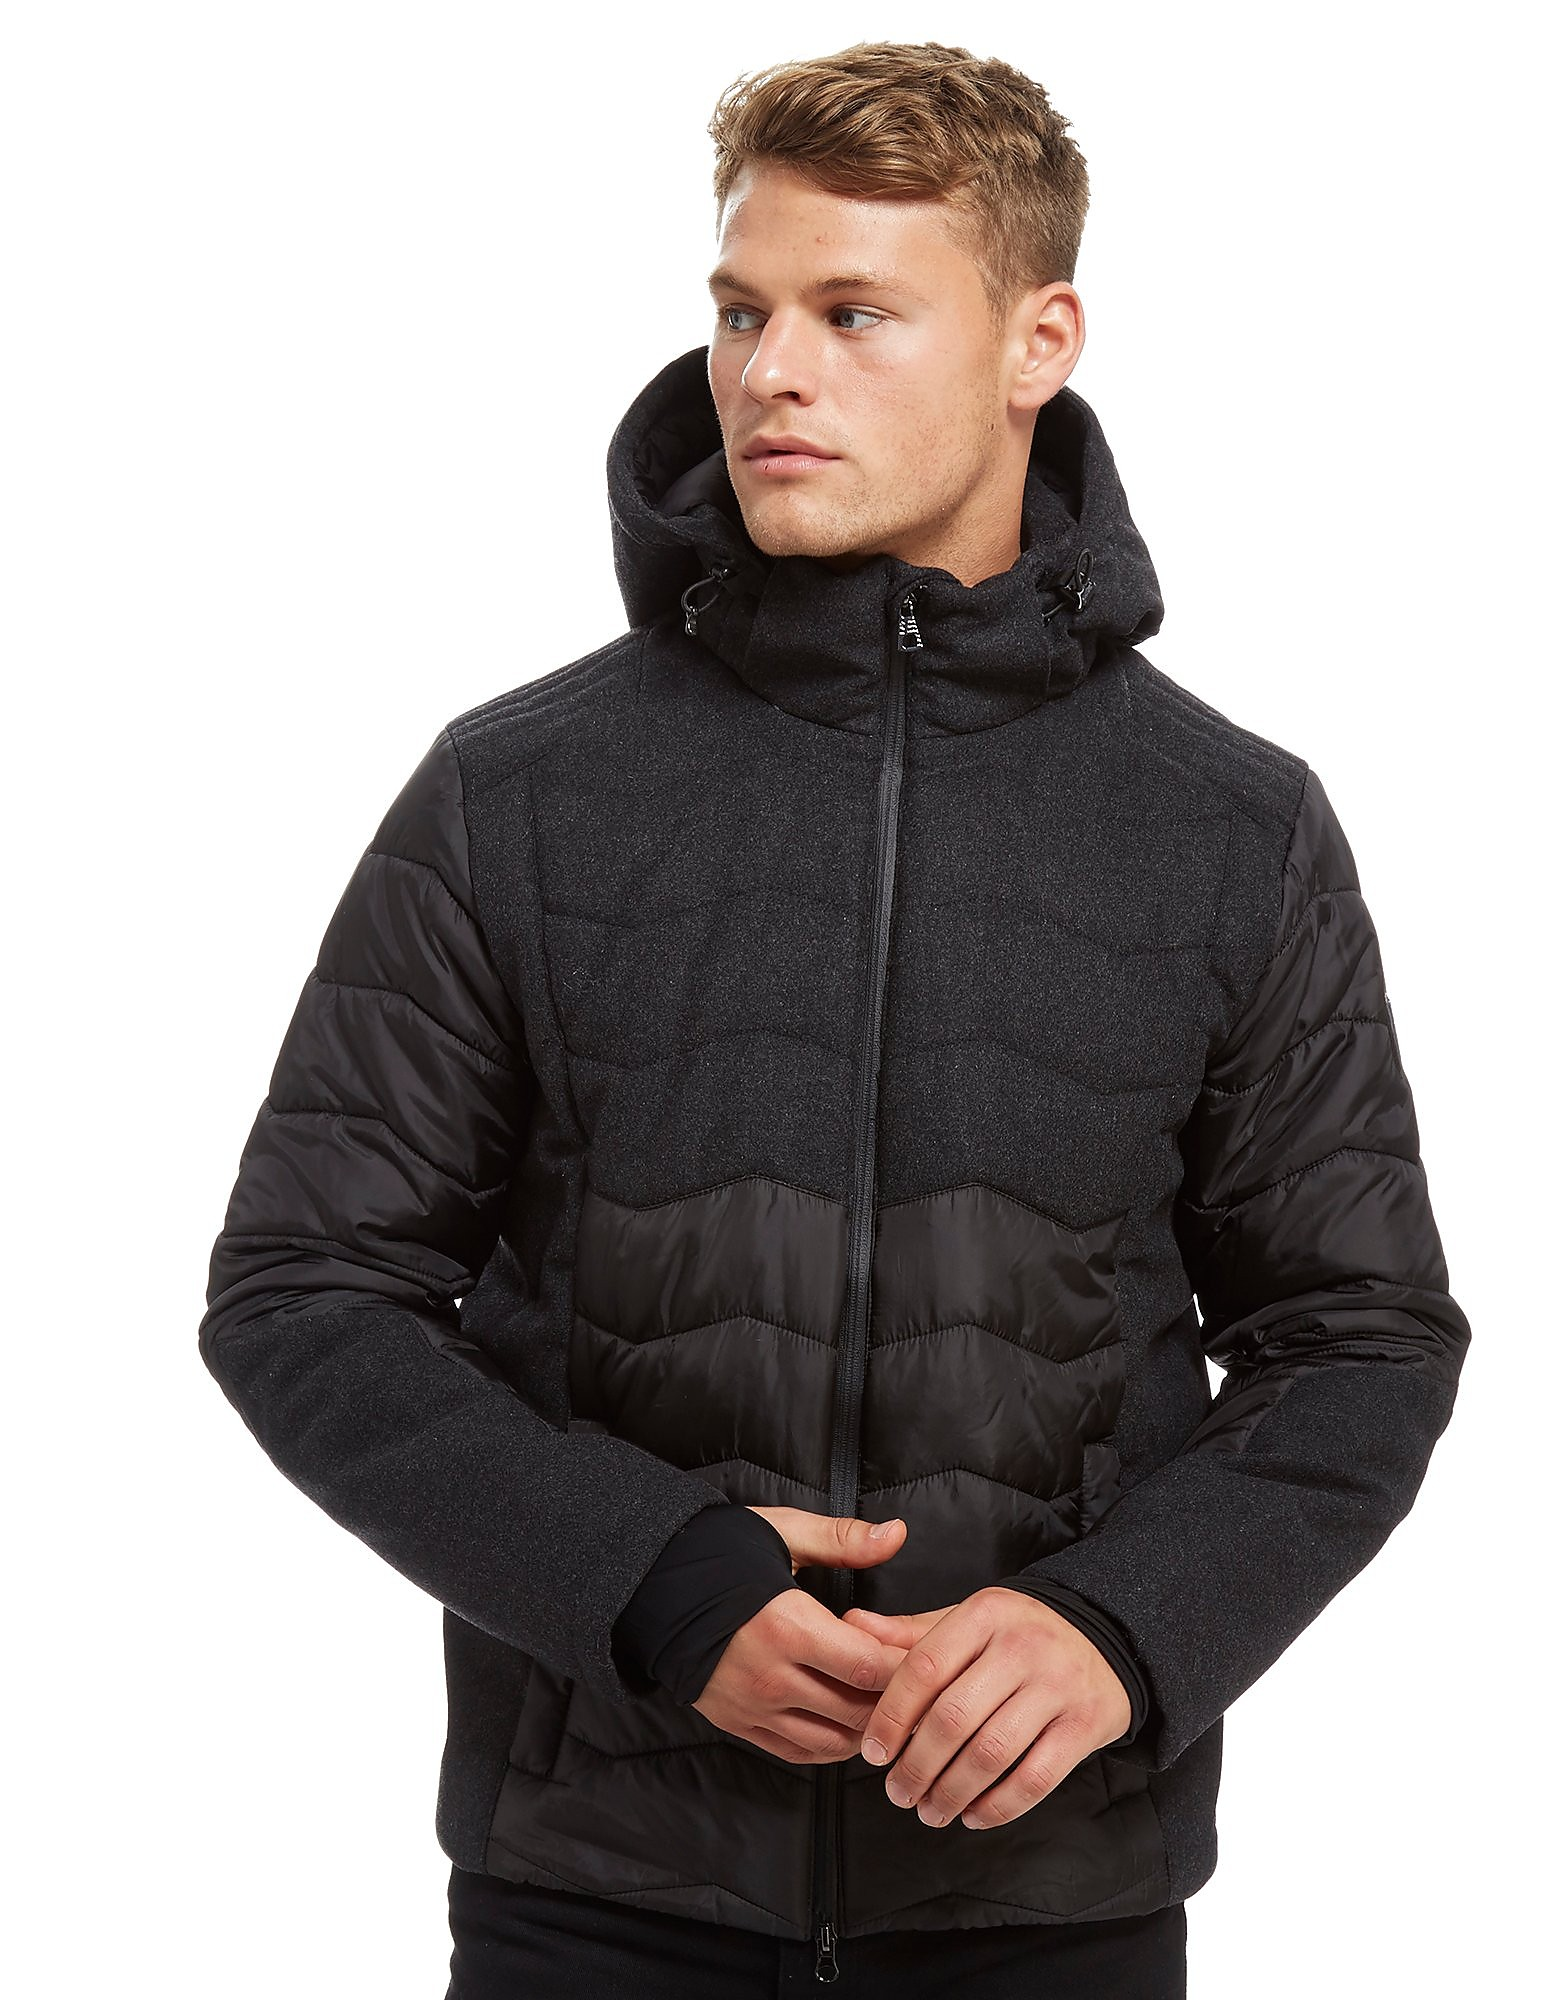 Emporio Armani EA7 Mountain Tech Jacket